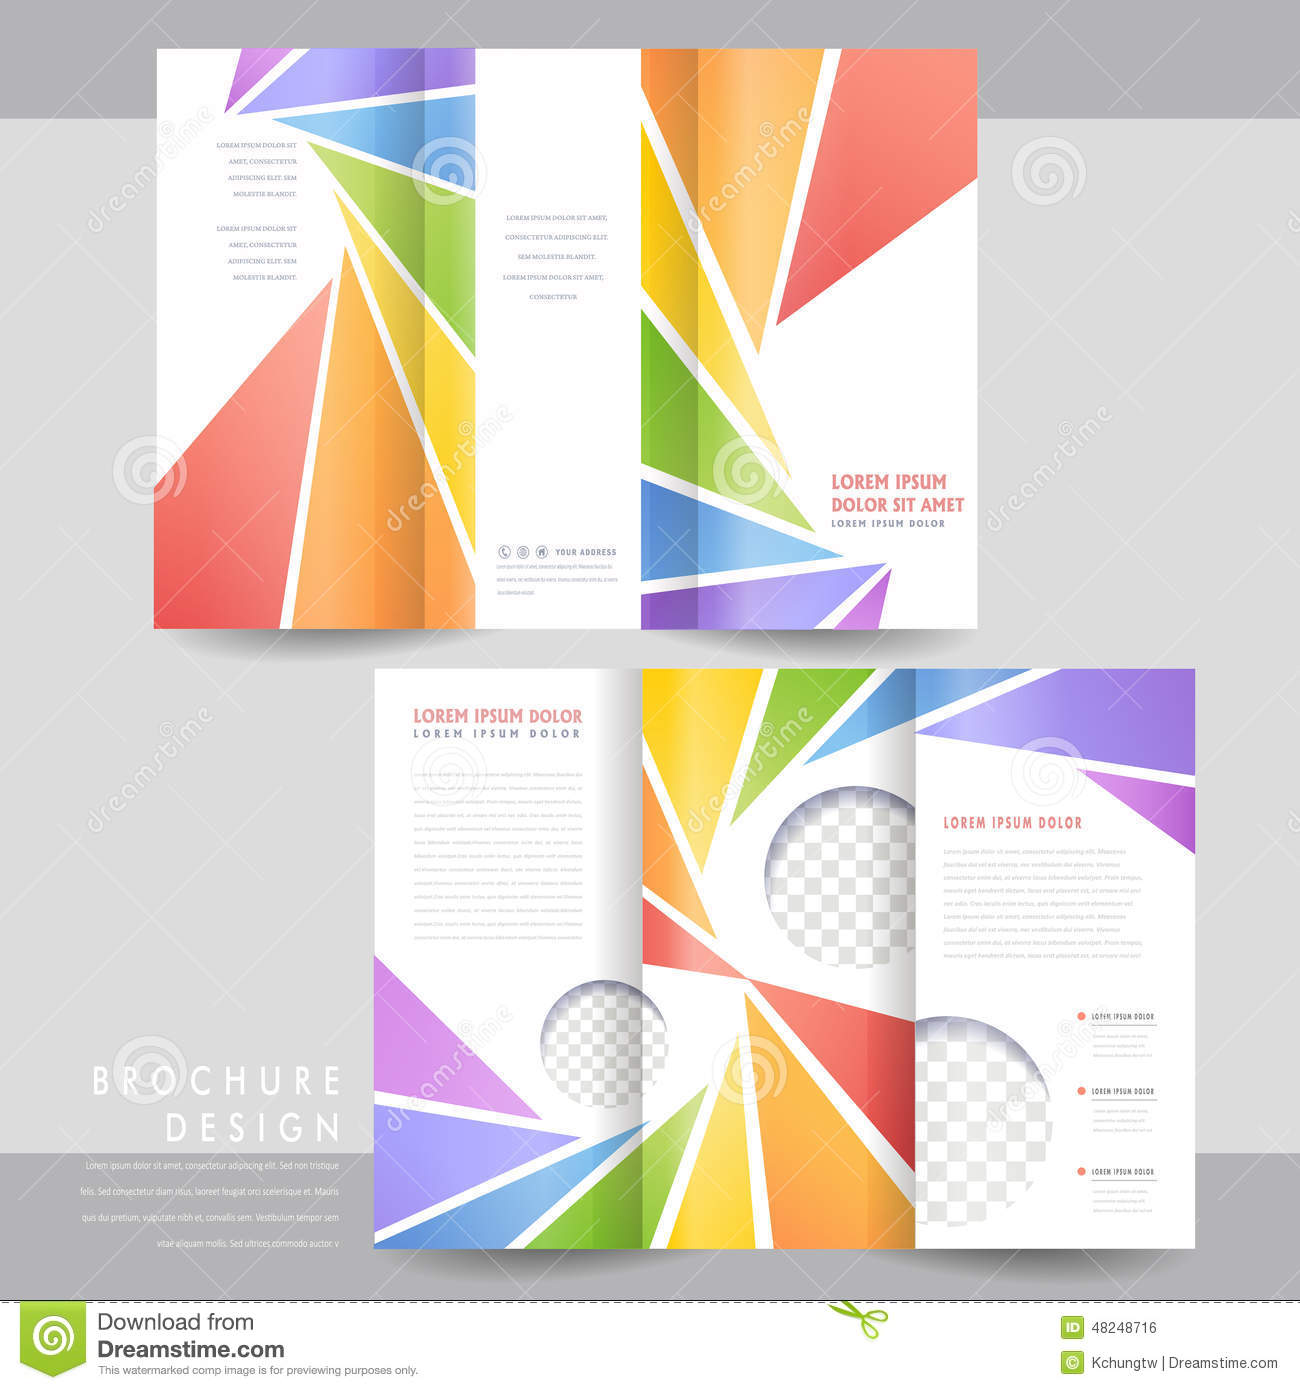 Colorful tri fold brochure template design stock vector for Template of a brochure